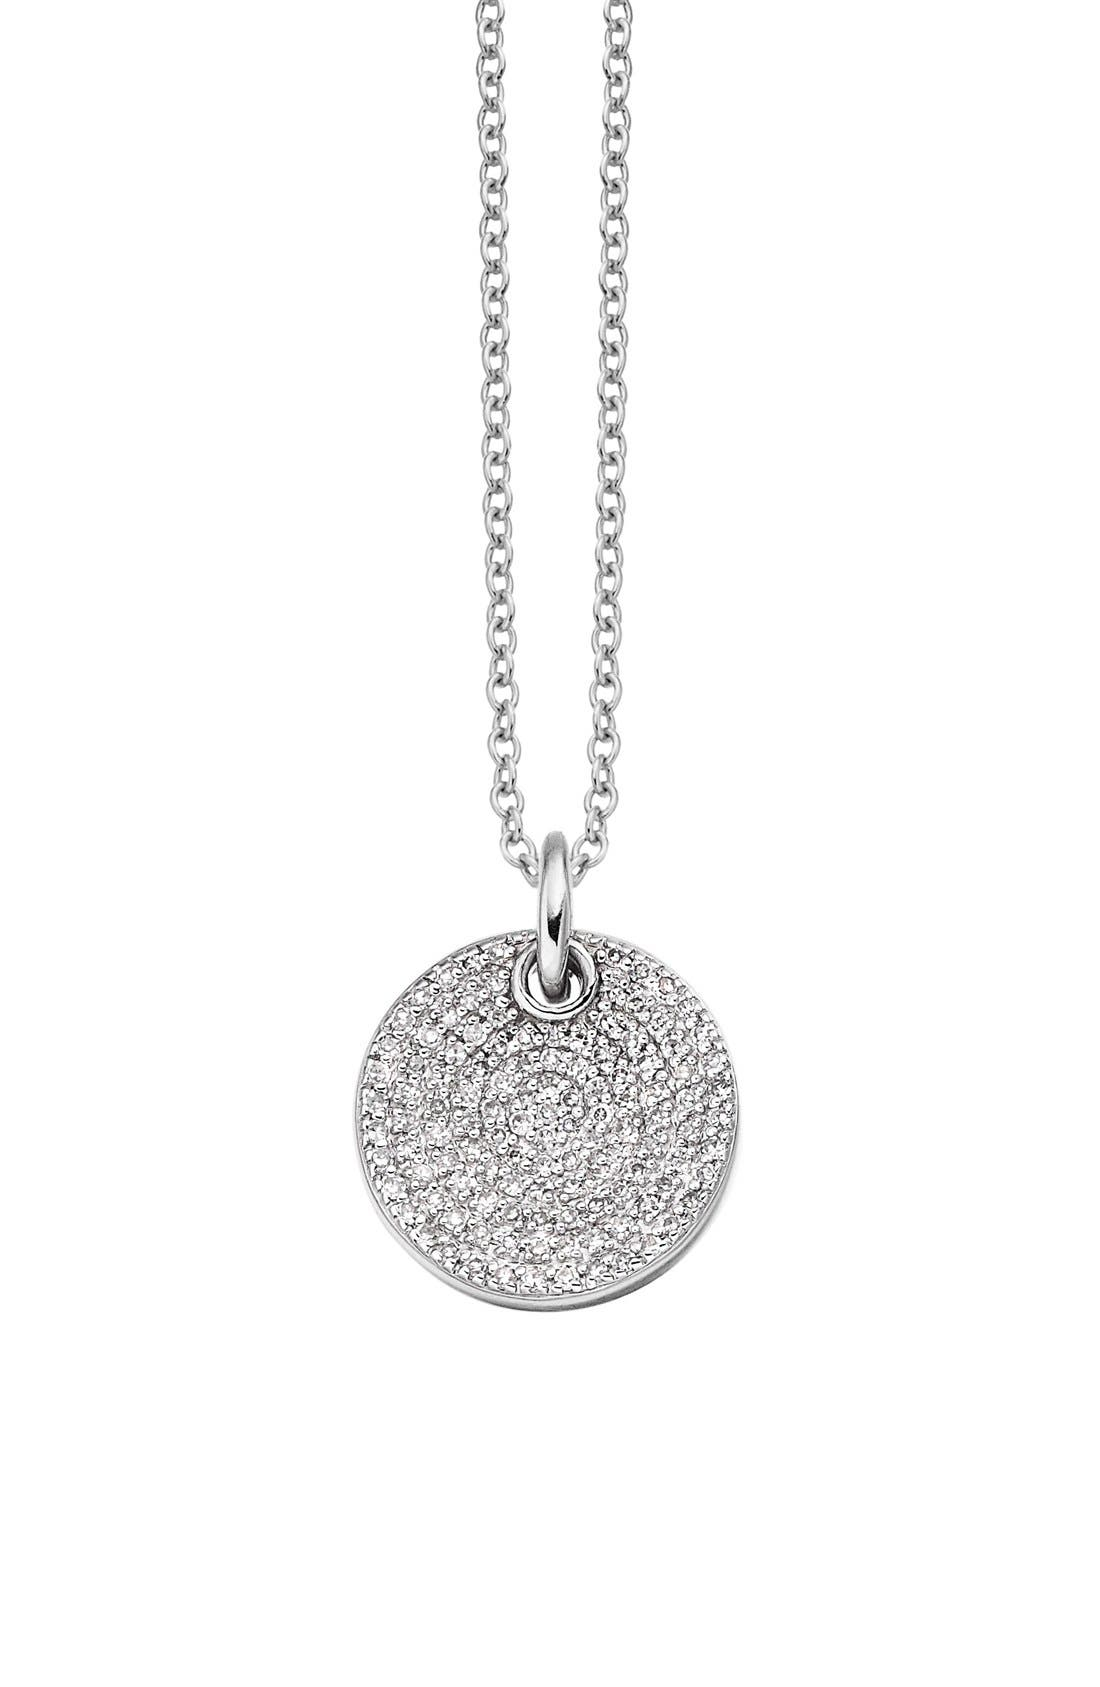 Main Image - Monica Vinader 'Ava' Diamond Disc Pendant